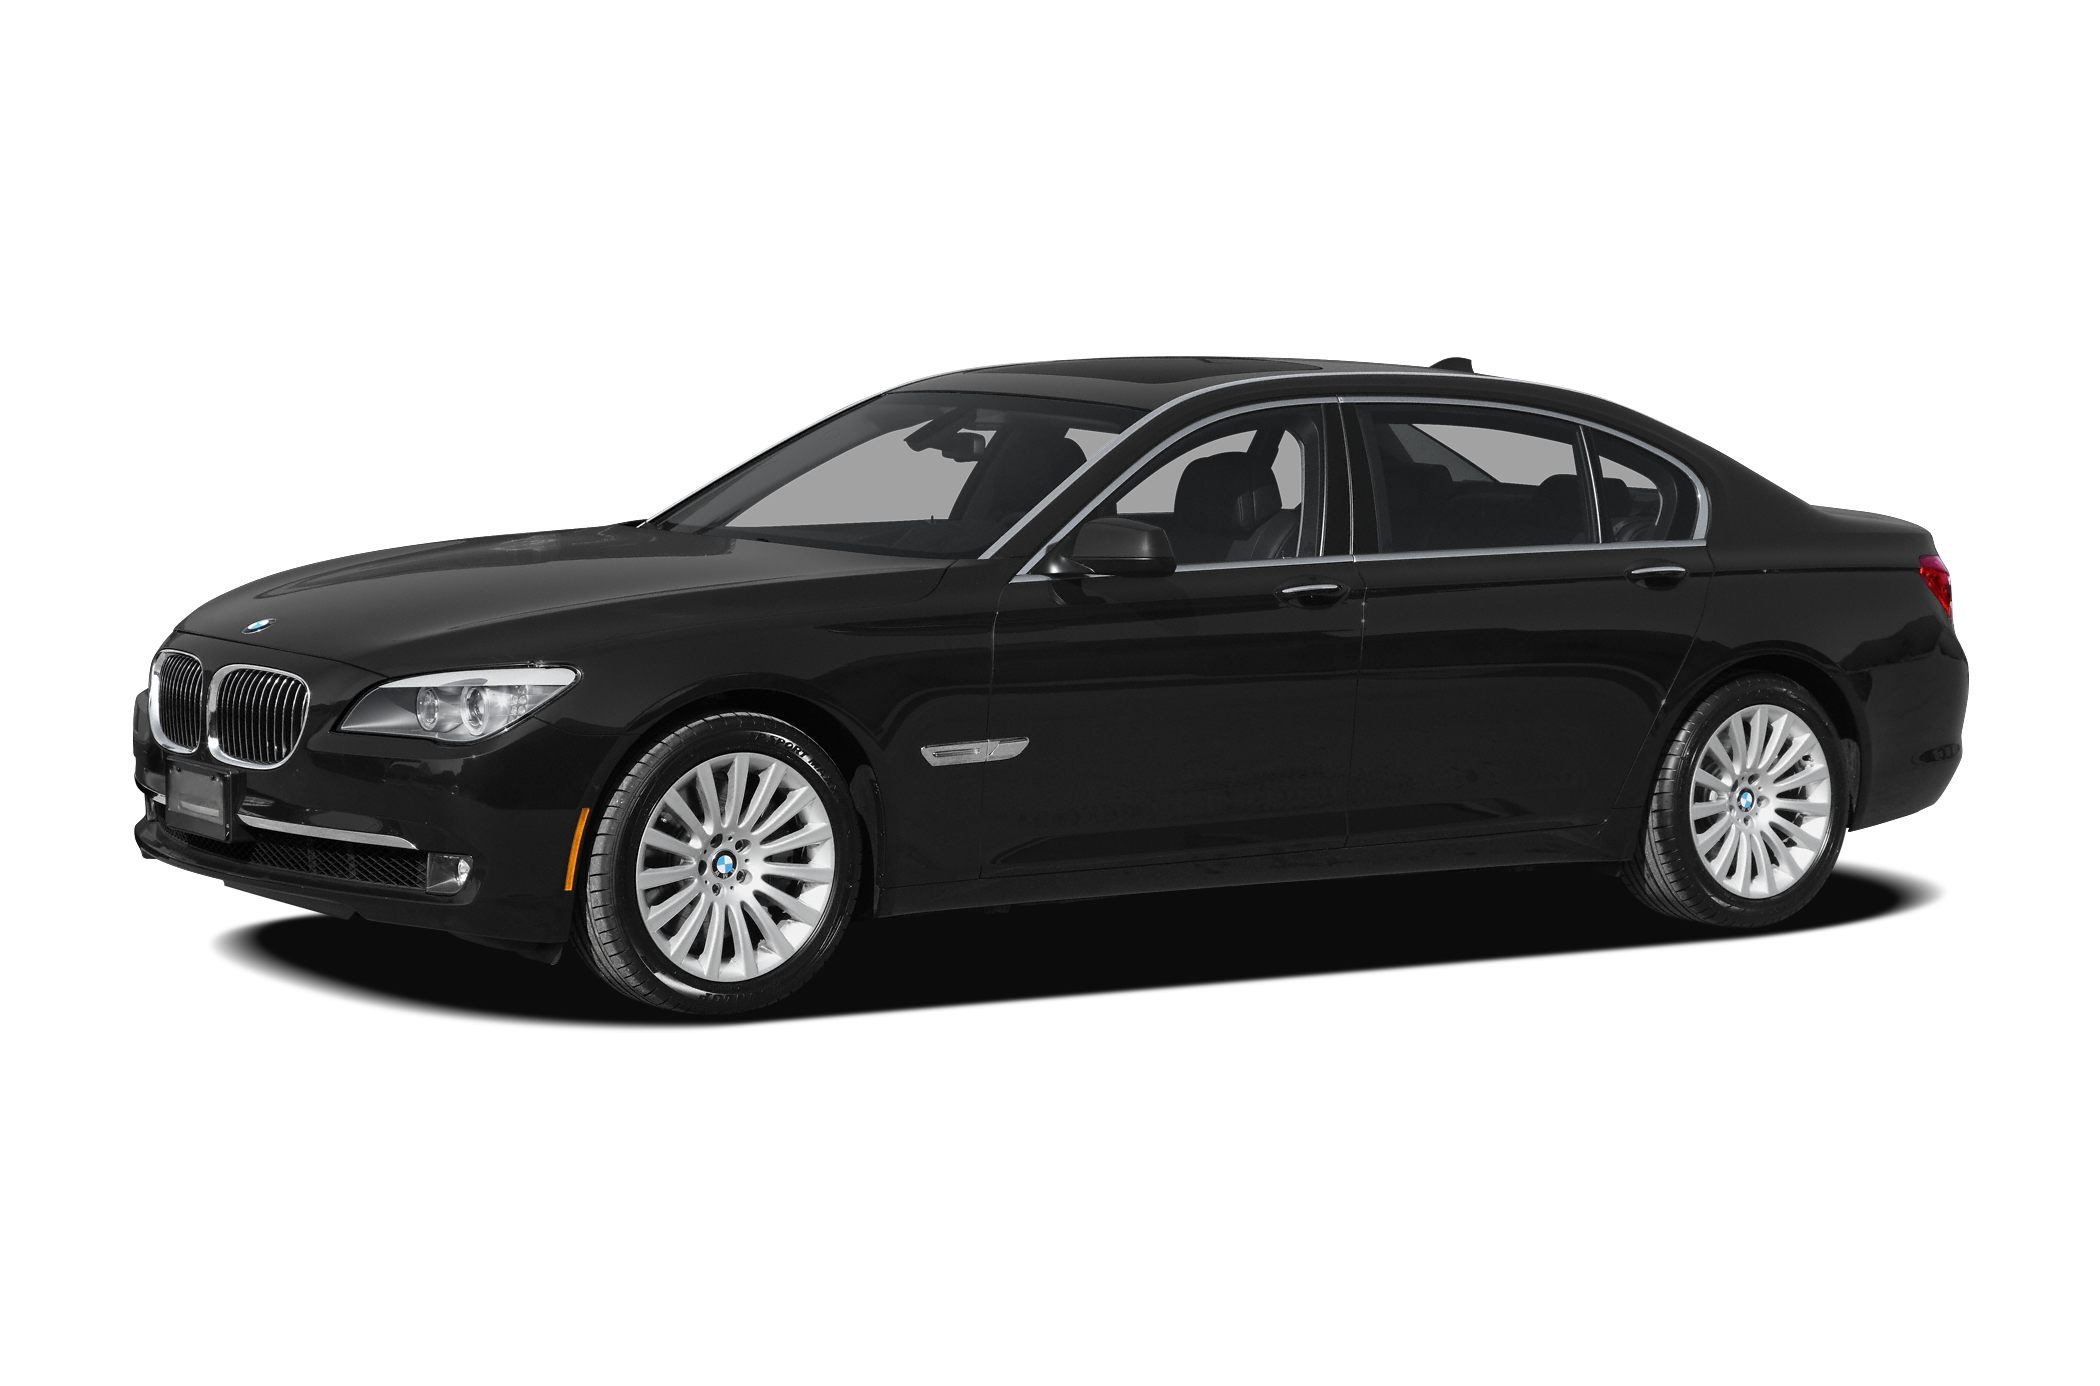 2012 BMW 750 Specs and Prices